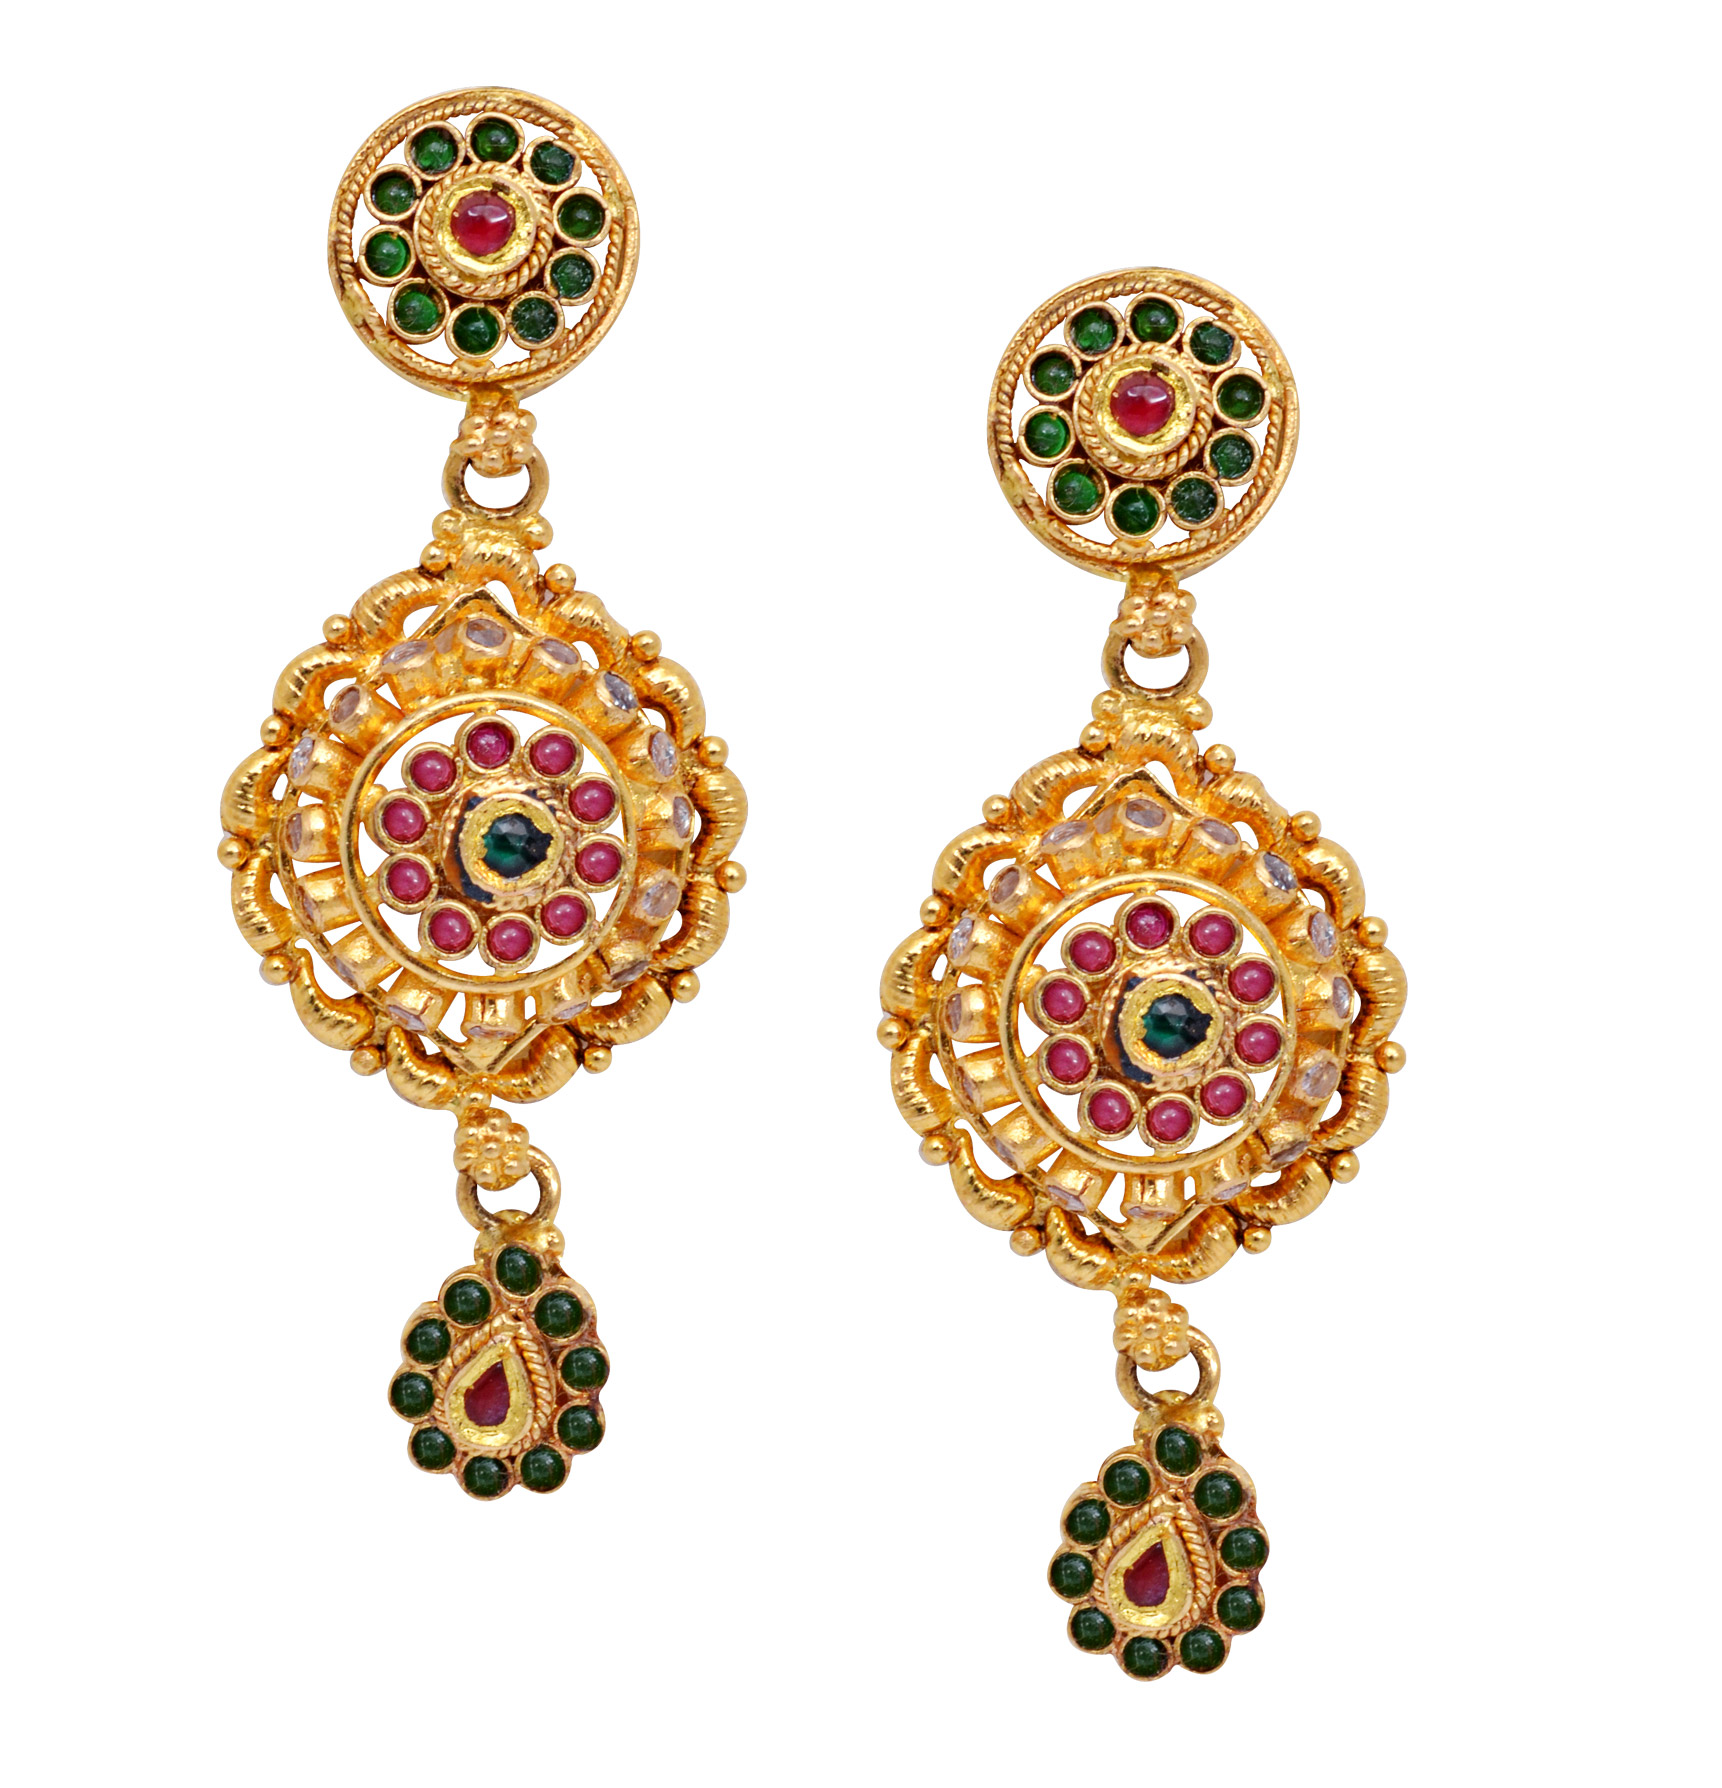 Earrings   GRT Jewellers – At Singapore from 3rd July